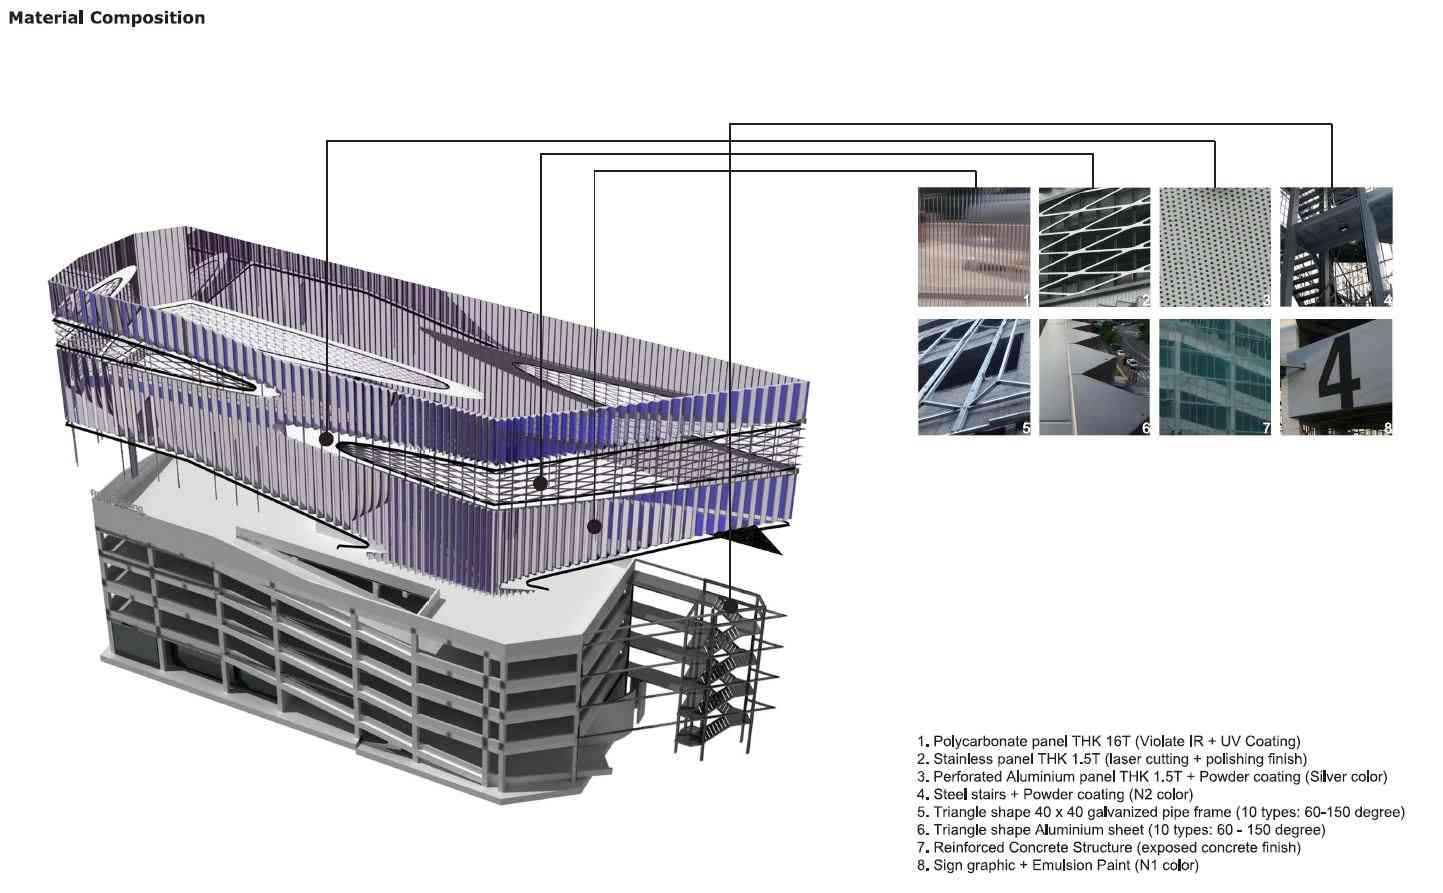 Materials used in the Herma Parking Building (South Korea)